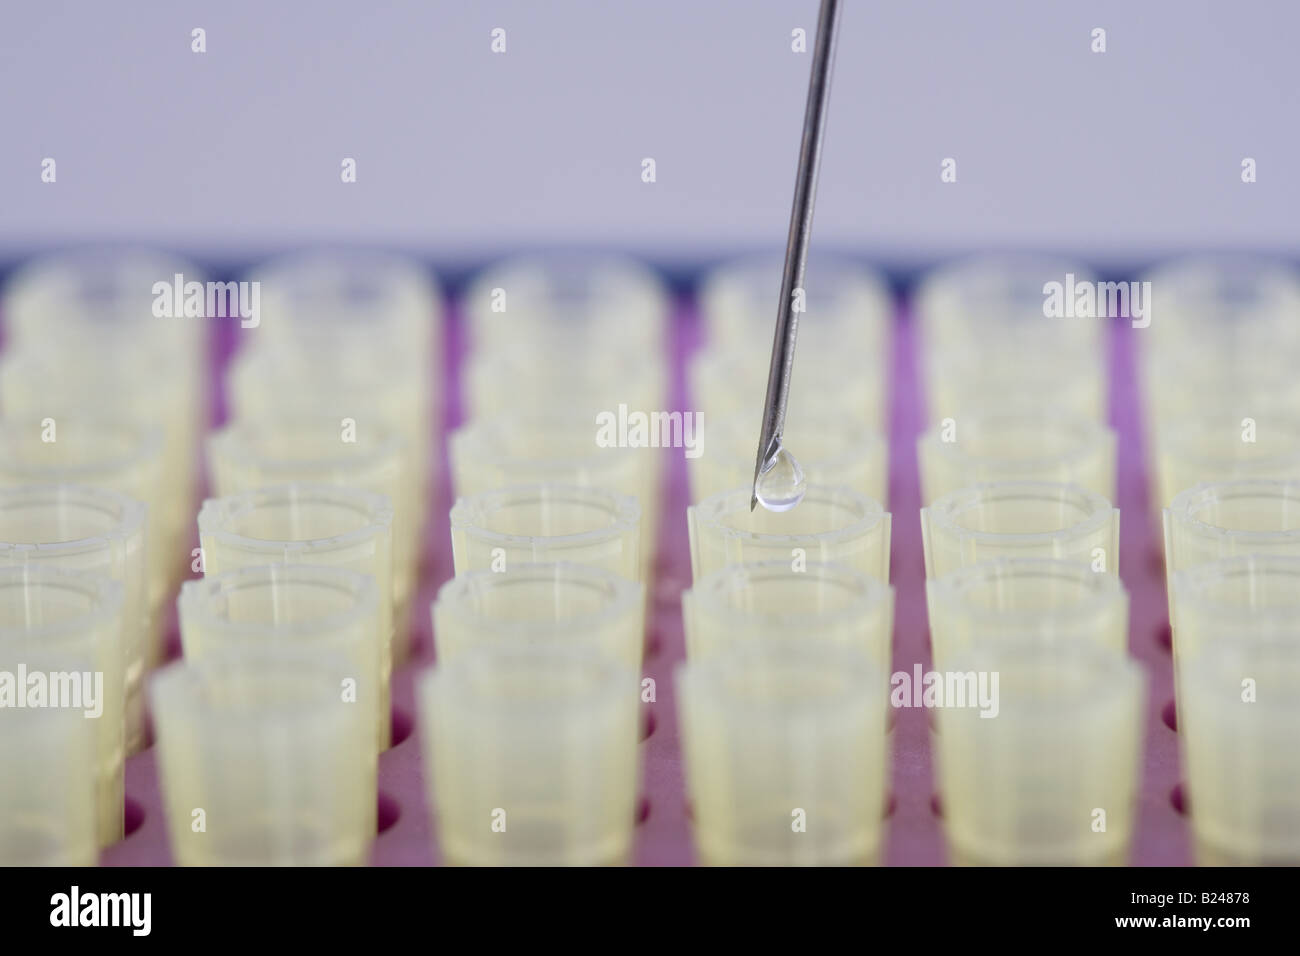 Syringe placing a droplet of liquid in test tube - Stock Image